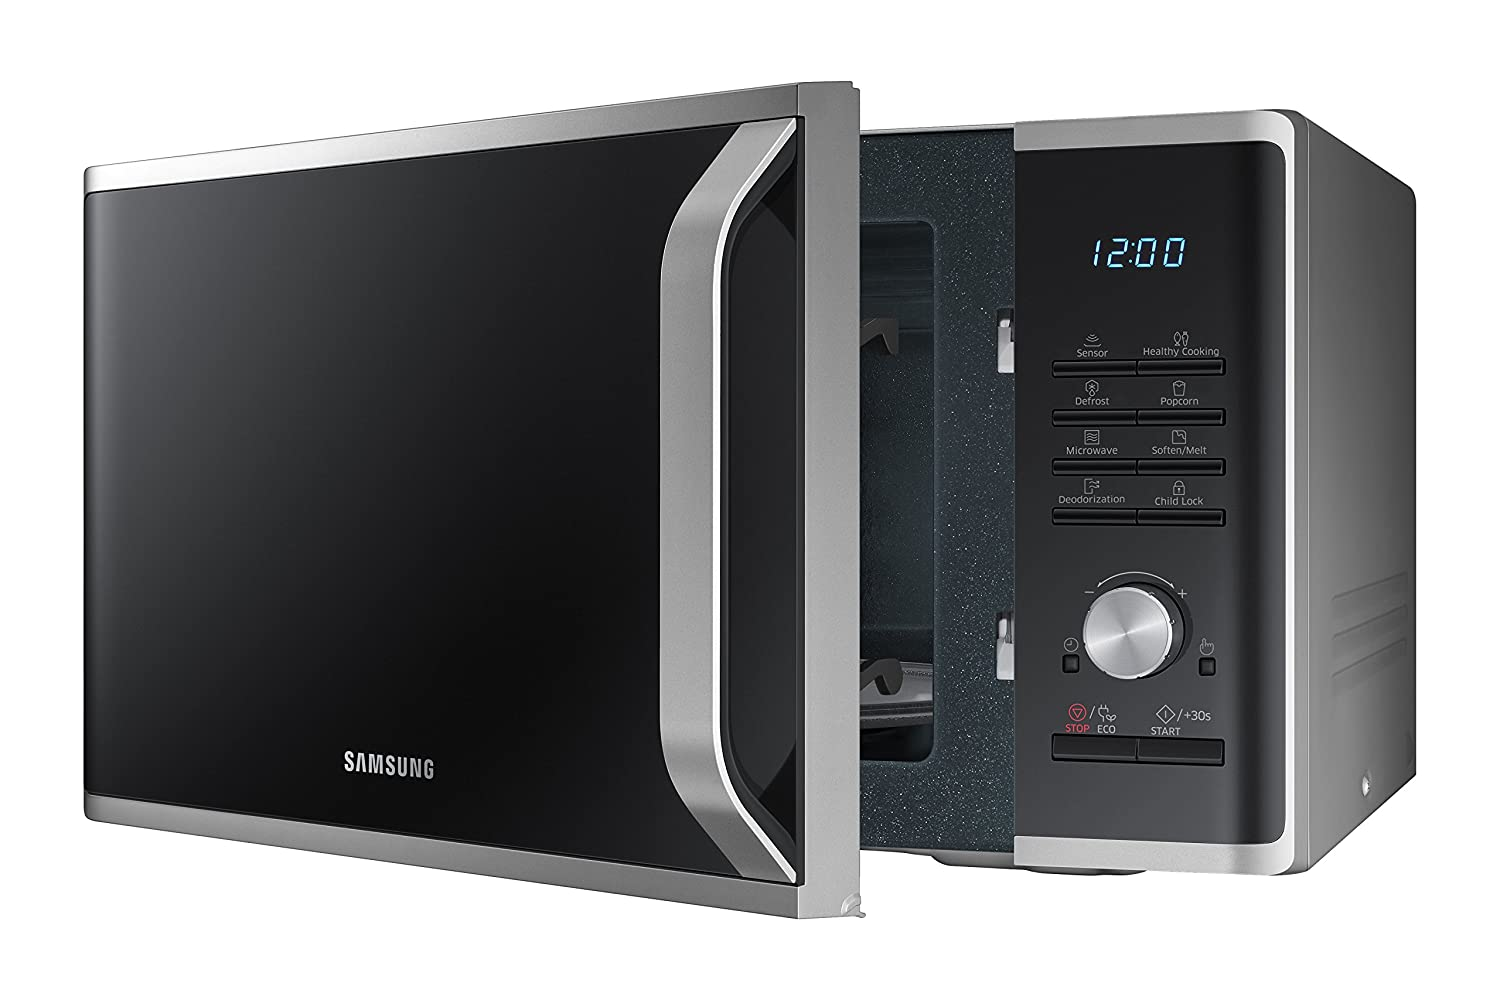 Best Microwave Oven 2021: What Are The Top Microwaves On The Market? 1